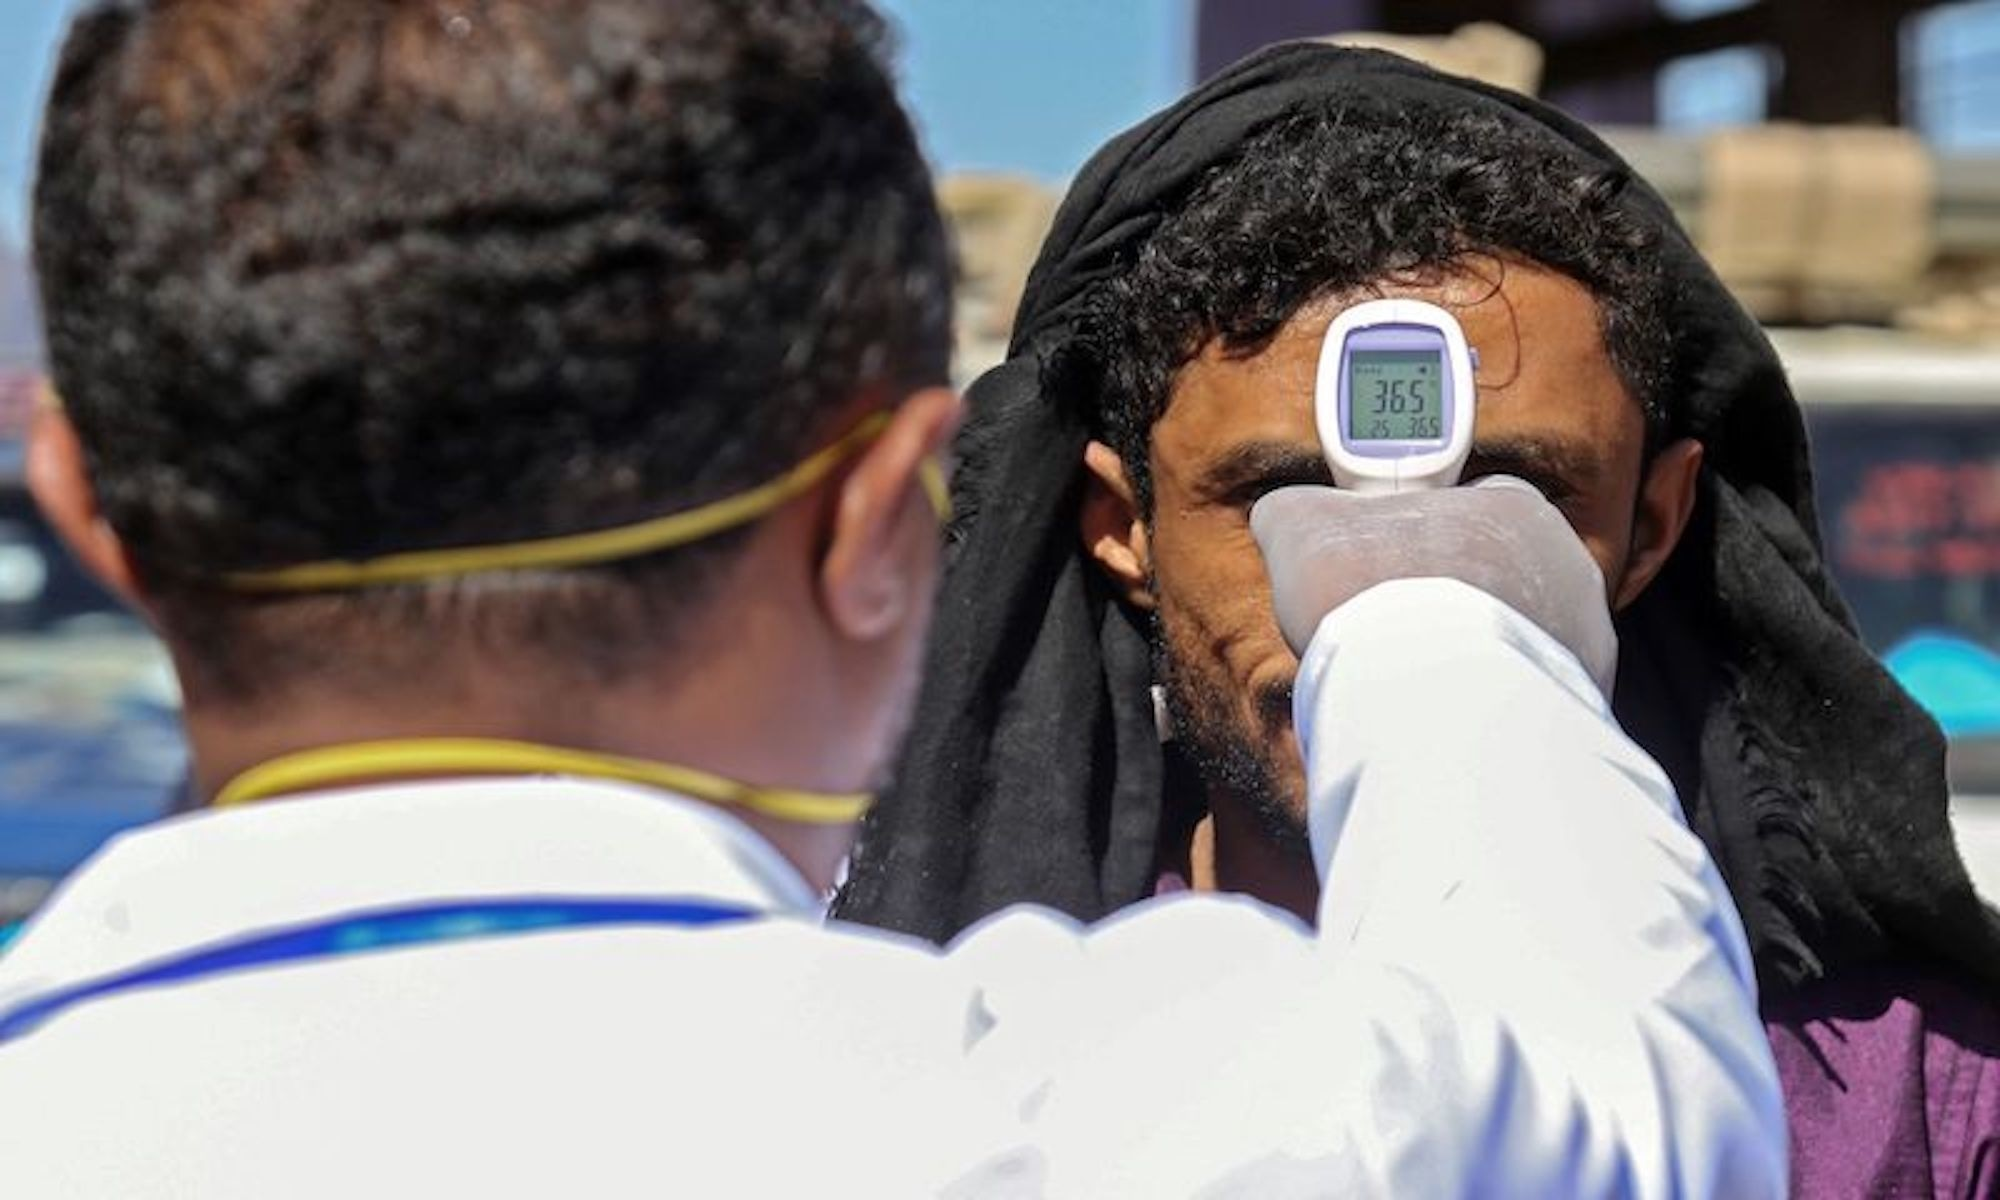 A health official checks the body temperature of man at the entrance of the city of Taez in southwestern Yemen on March 23, 2020 amid concerns over the spread of the COVID-19 novel coronavirus. (Photo by Ahmad AL-BASHA / AFP) — AFP or licensors